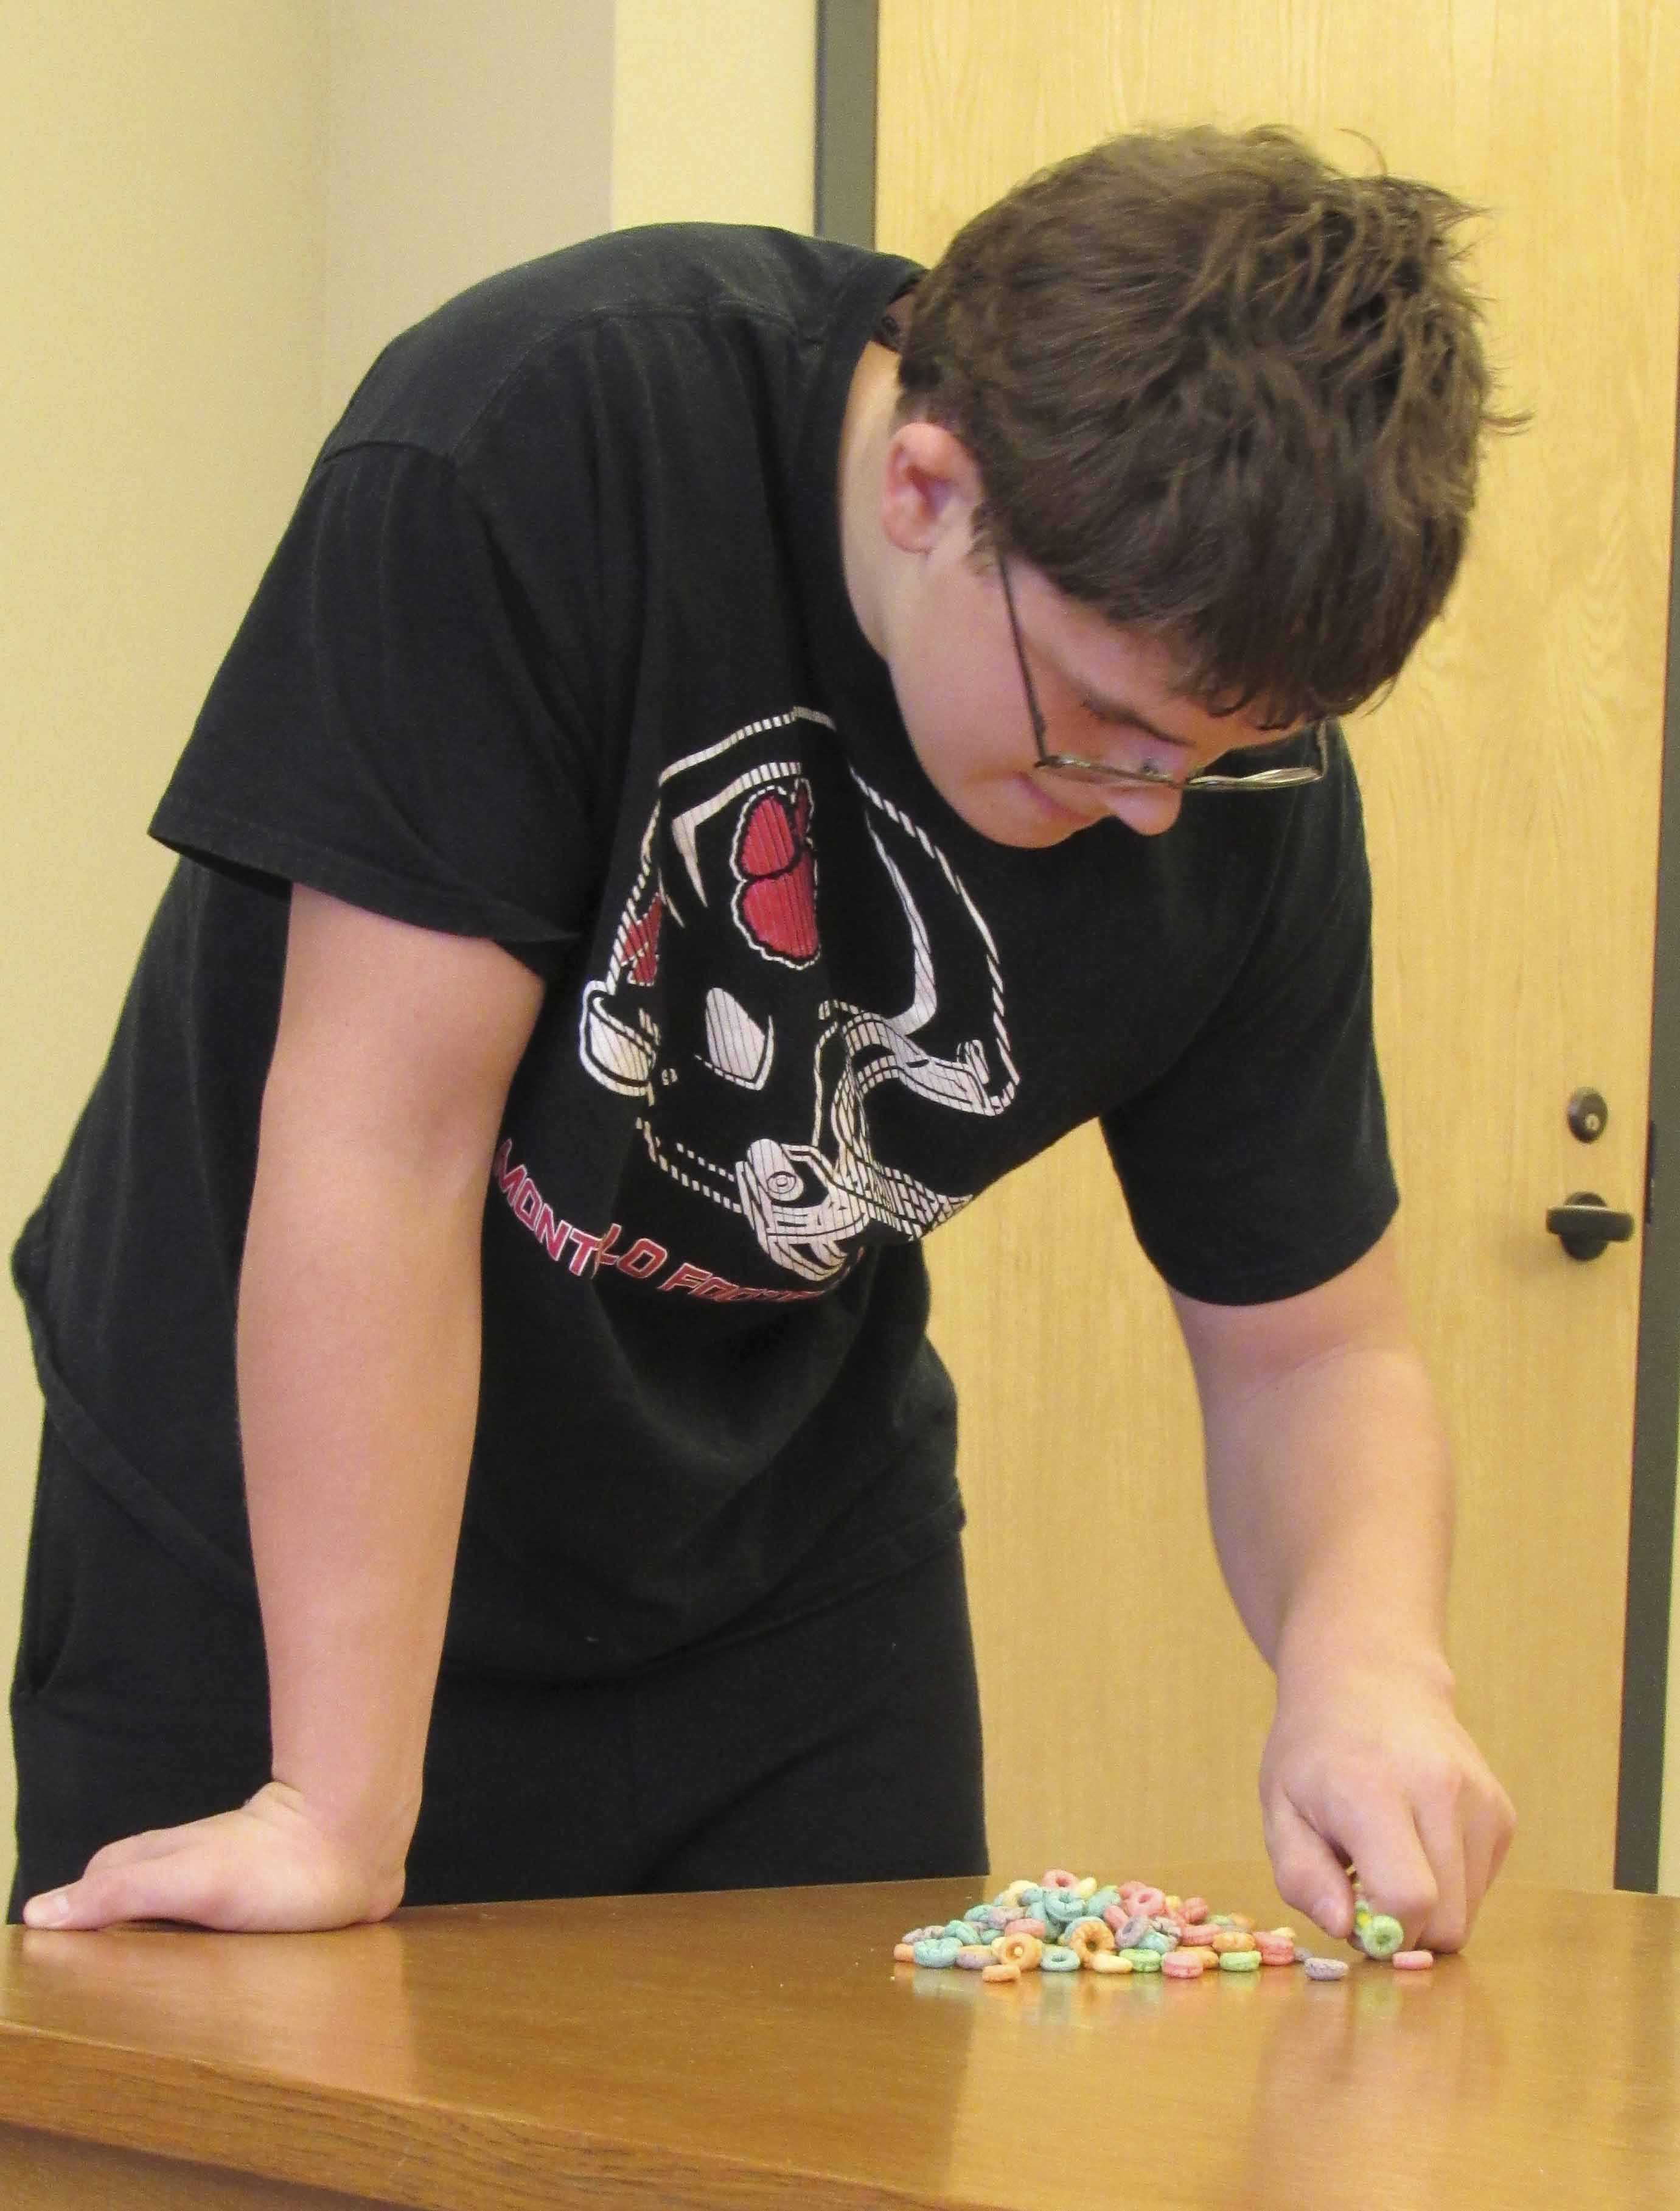 Mason Reuter, 14, tries his hand at a 60-second challenge contest, picking up Fruit Loops with a pipe cleaner using only one hand. Not as easy as it looks.